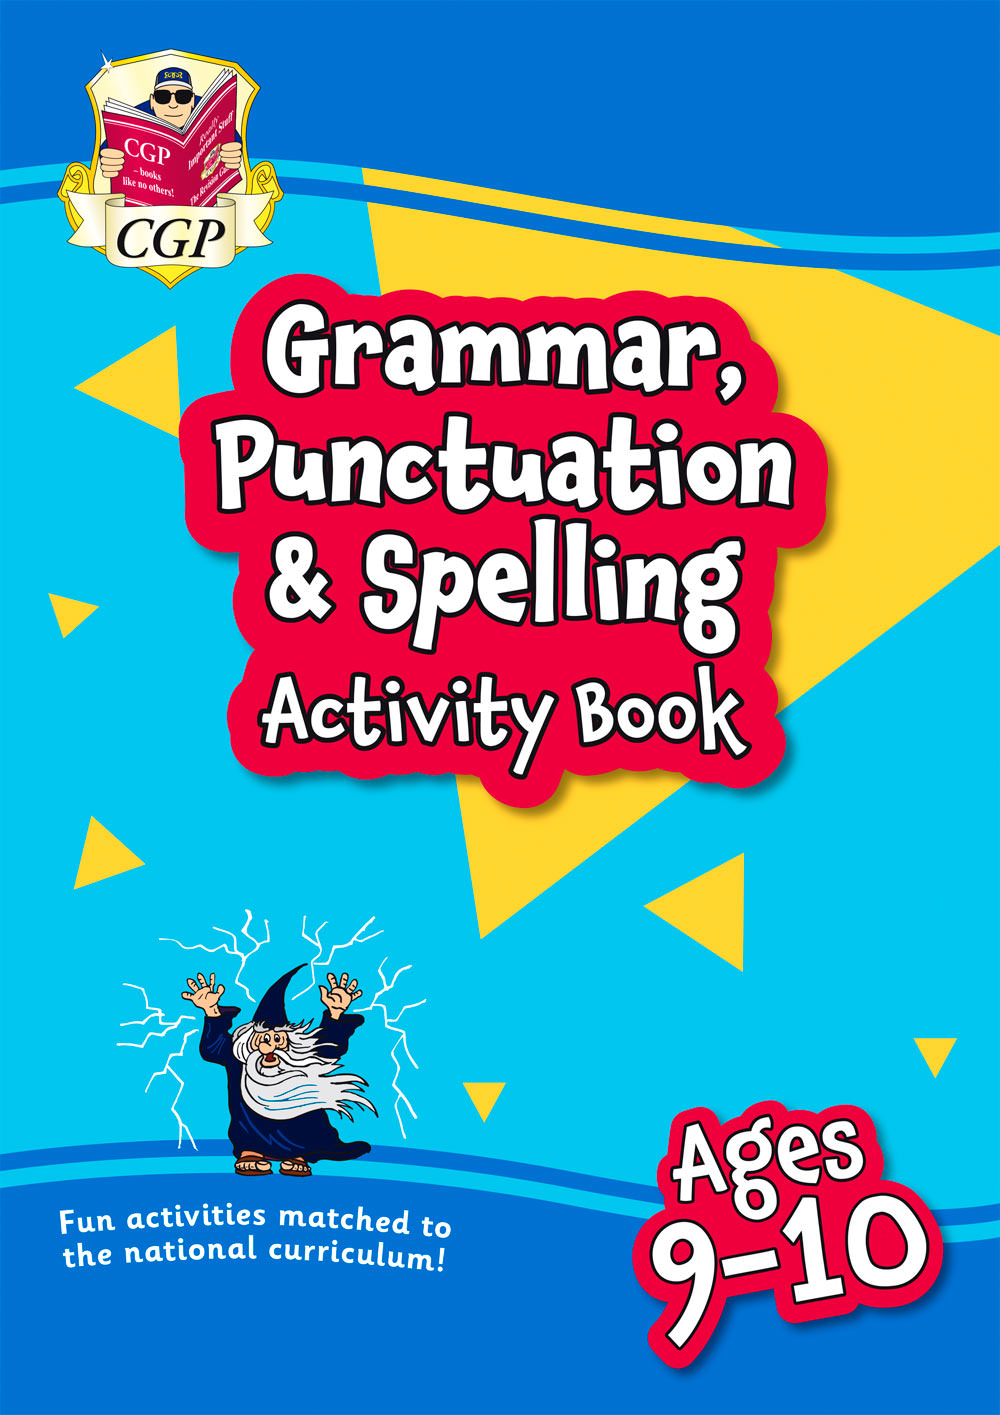 EPF5GQ21 - New Grammar, Punctuation & Spelling Activity Book for Ages 9-10